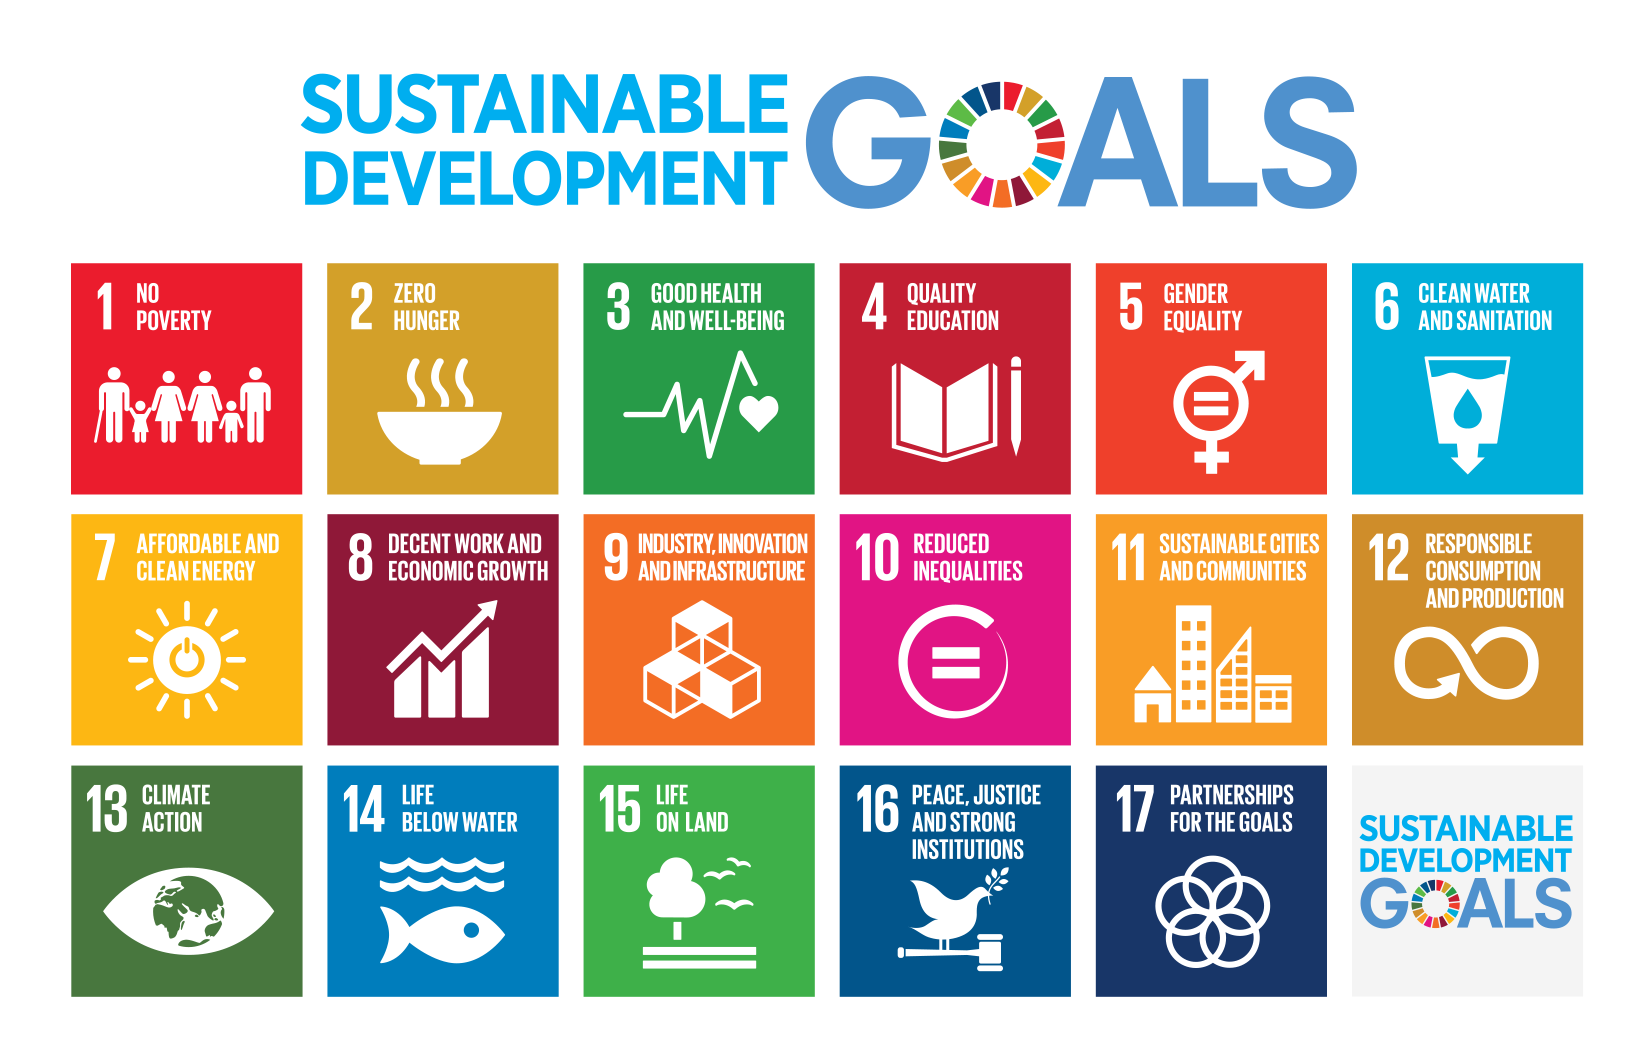 UN's Sustainable Development Goals (SDGs)